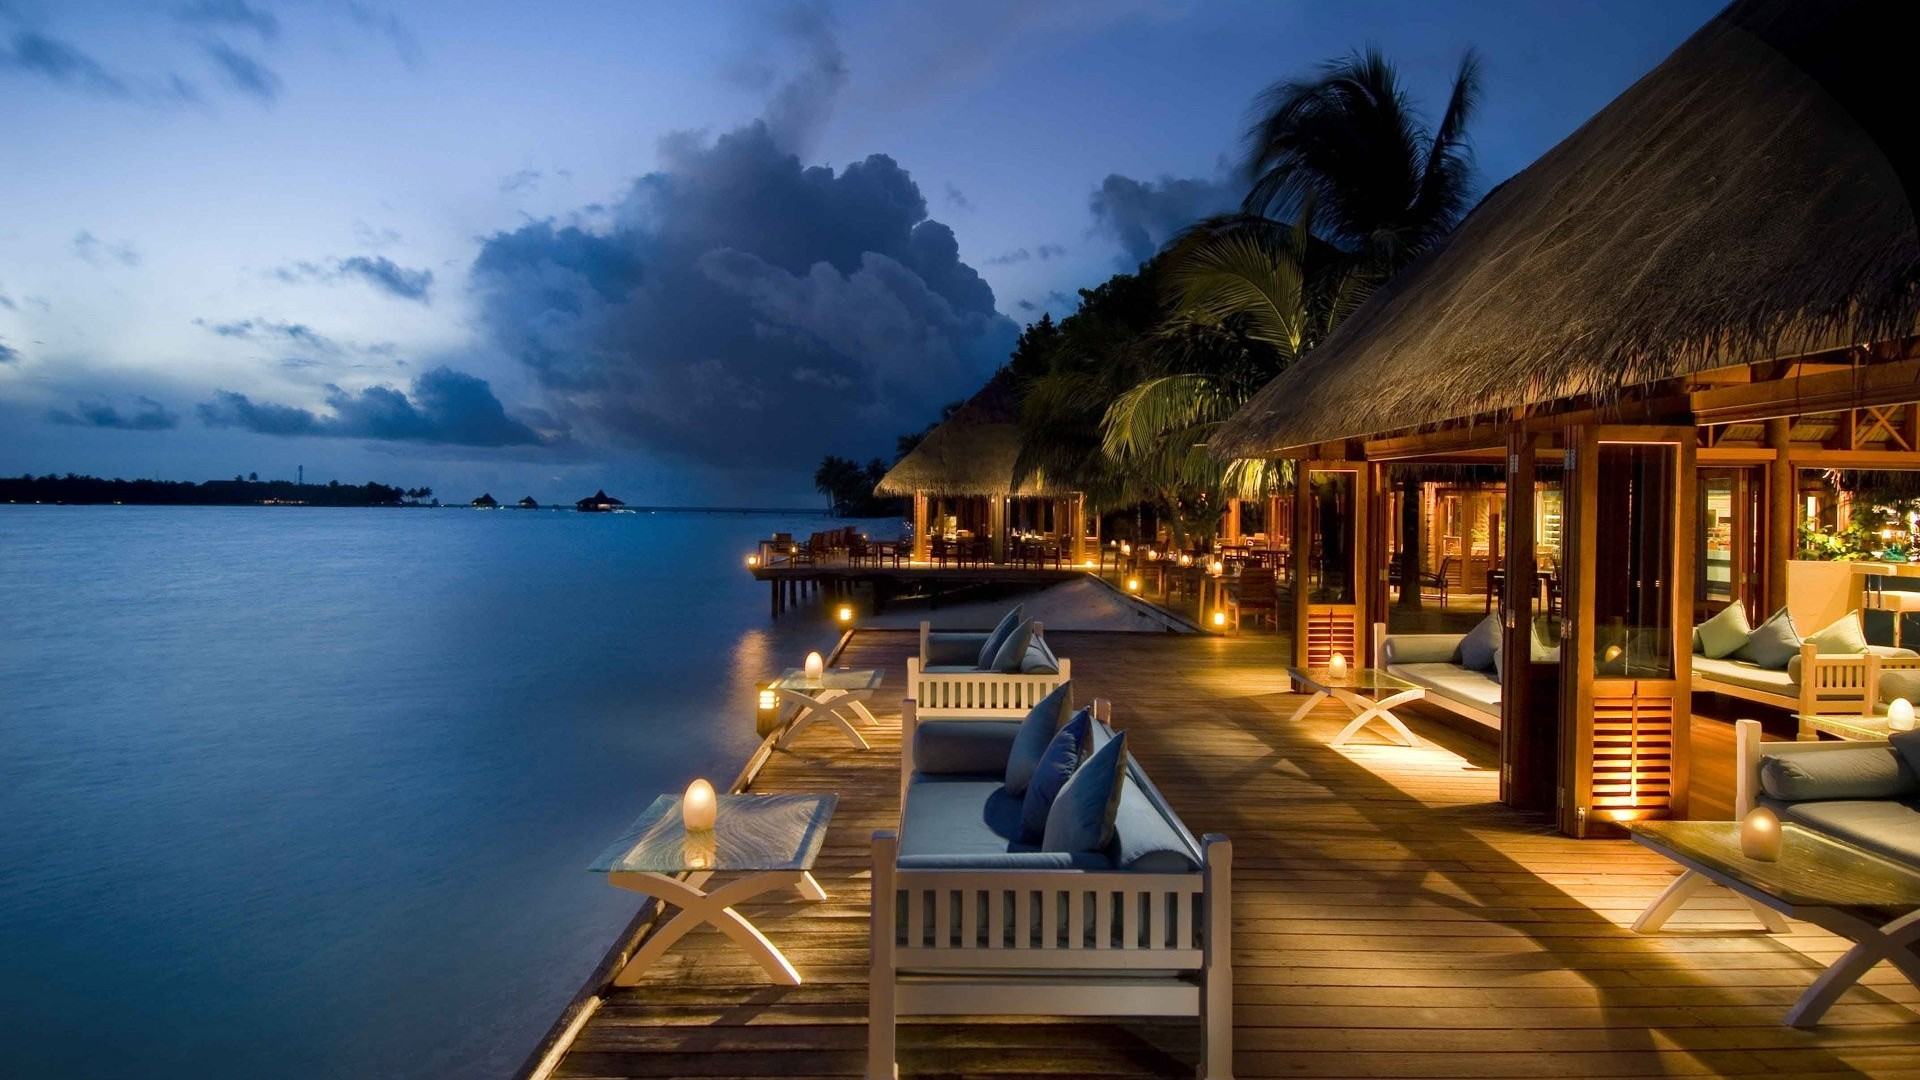 Maldives Resort Wallpaper in high resolution for Get Maldives 1920x1080